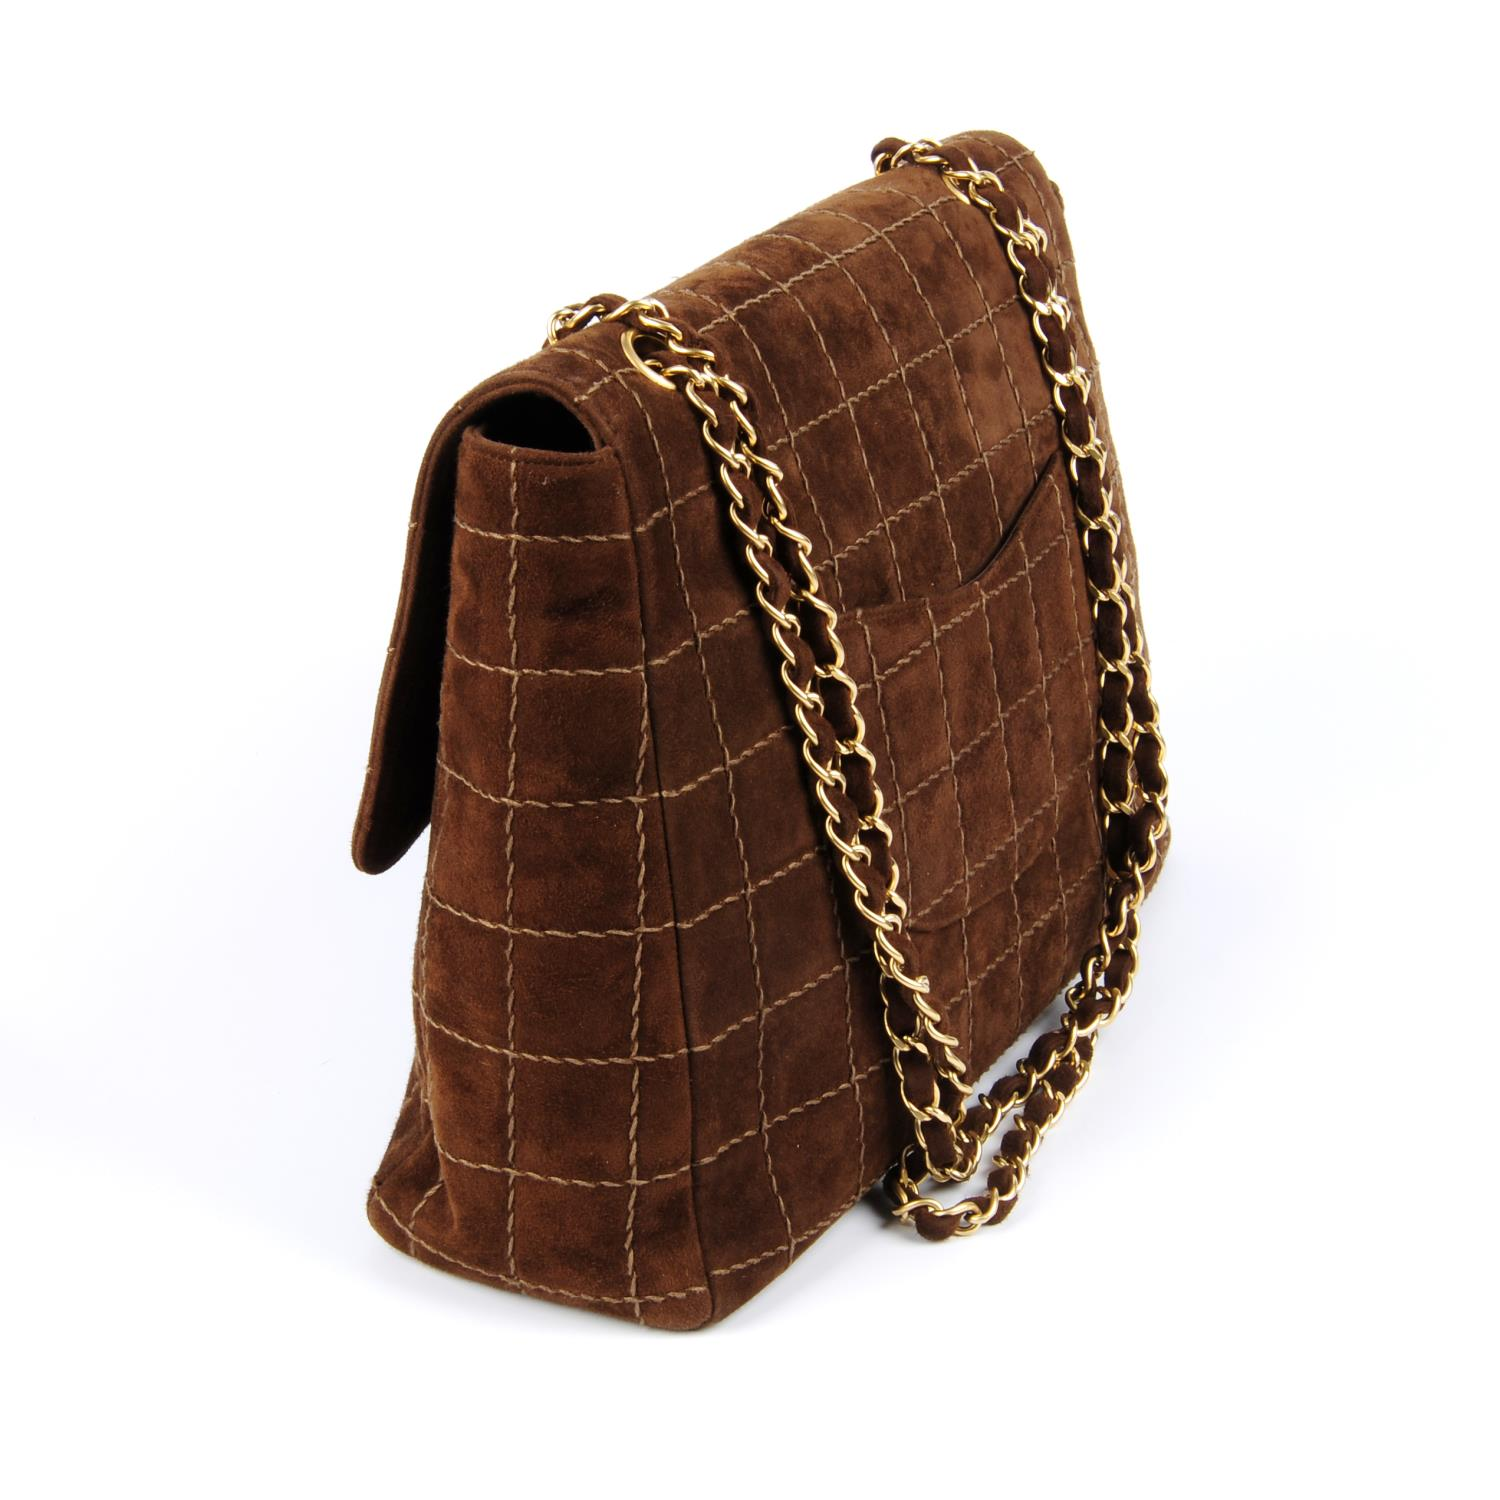 Lot 51 - CHANEL - a brown suede handbag.